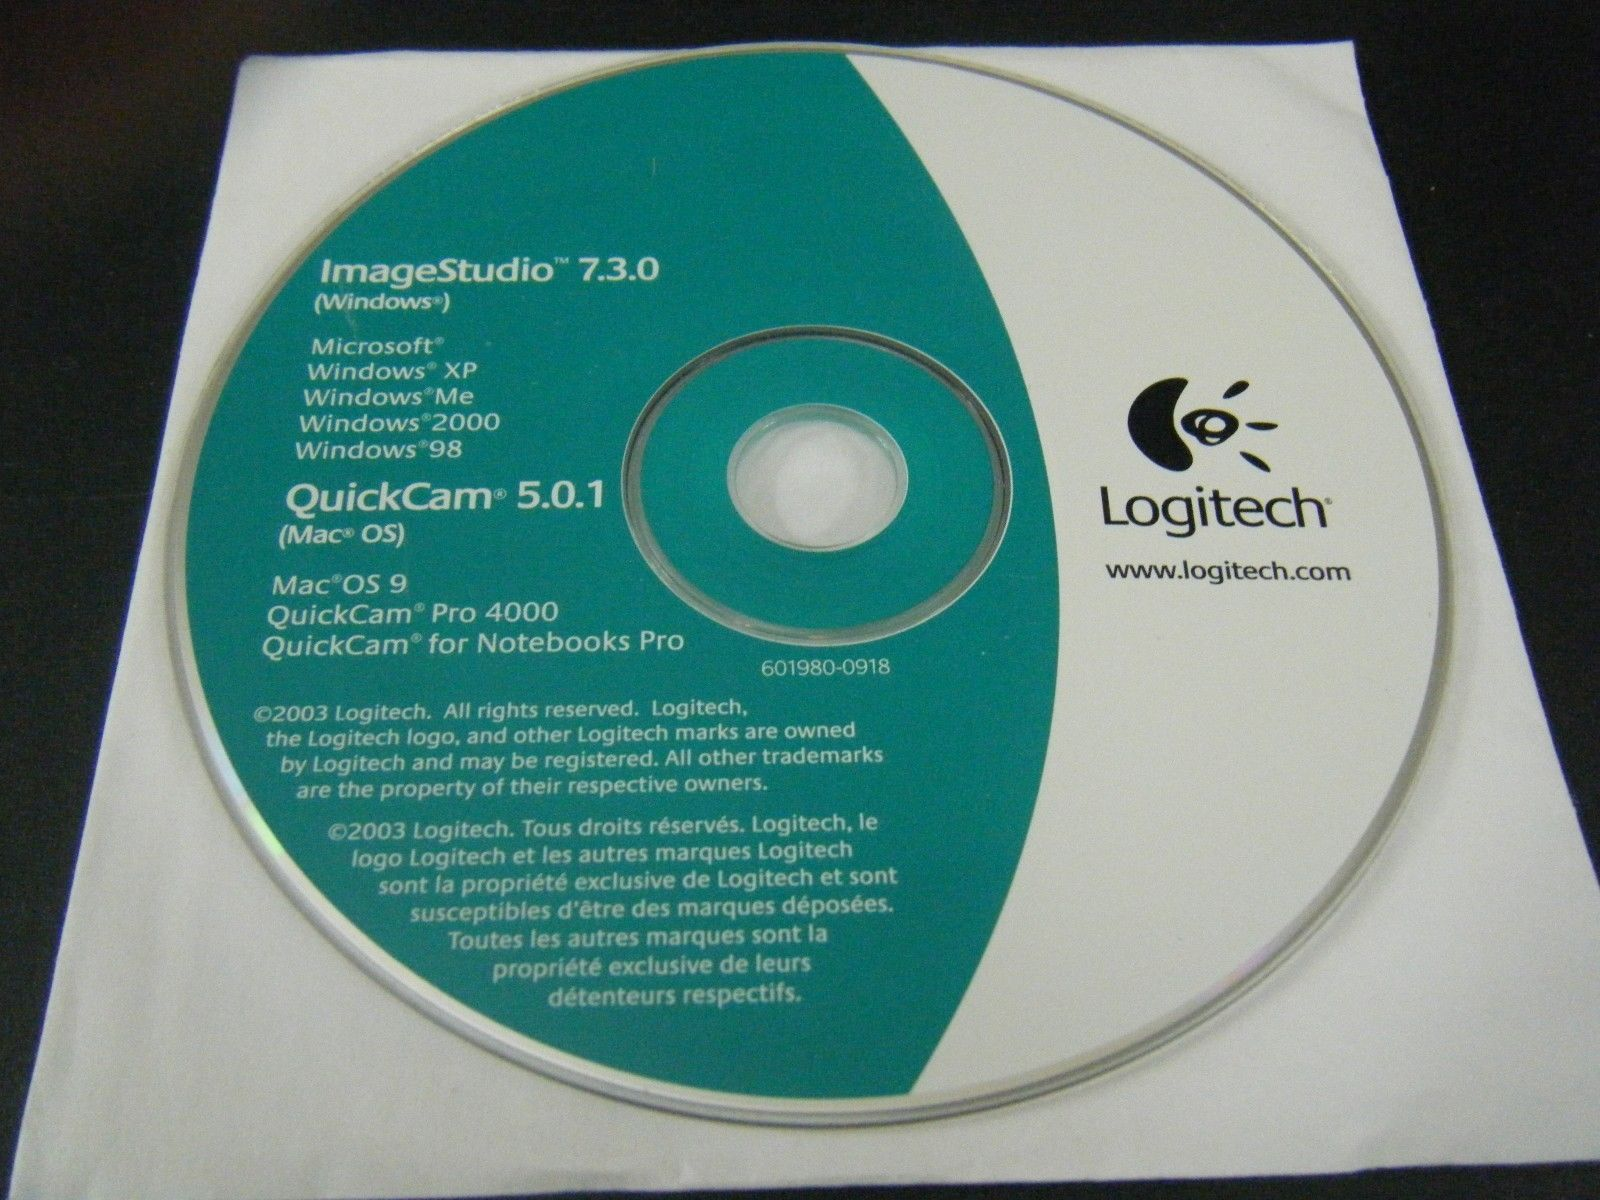 Logitech Software: 11 listings